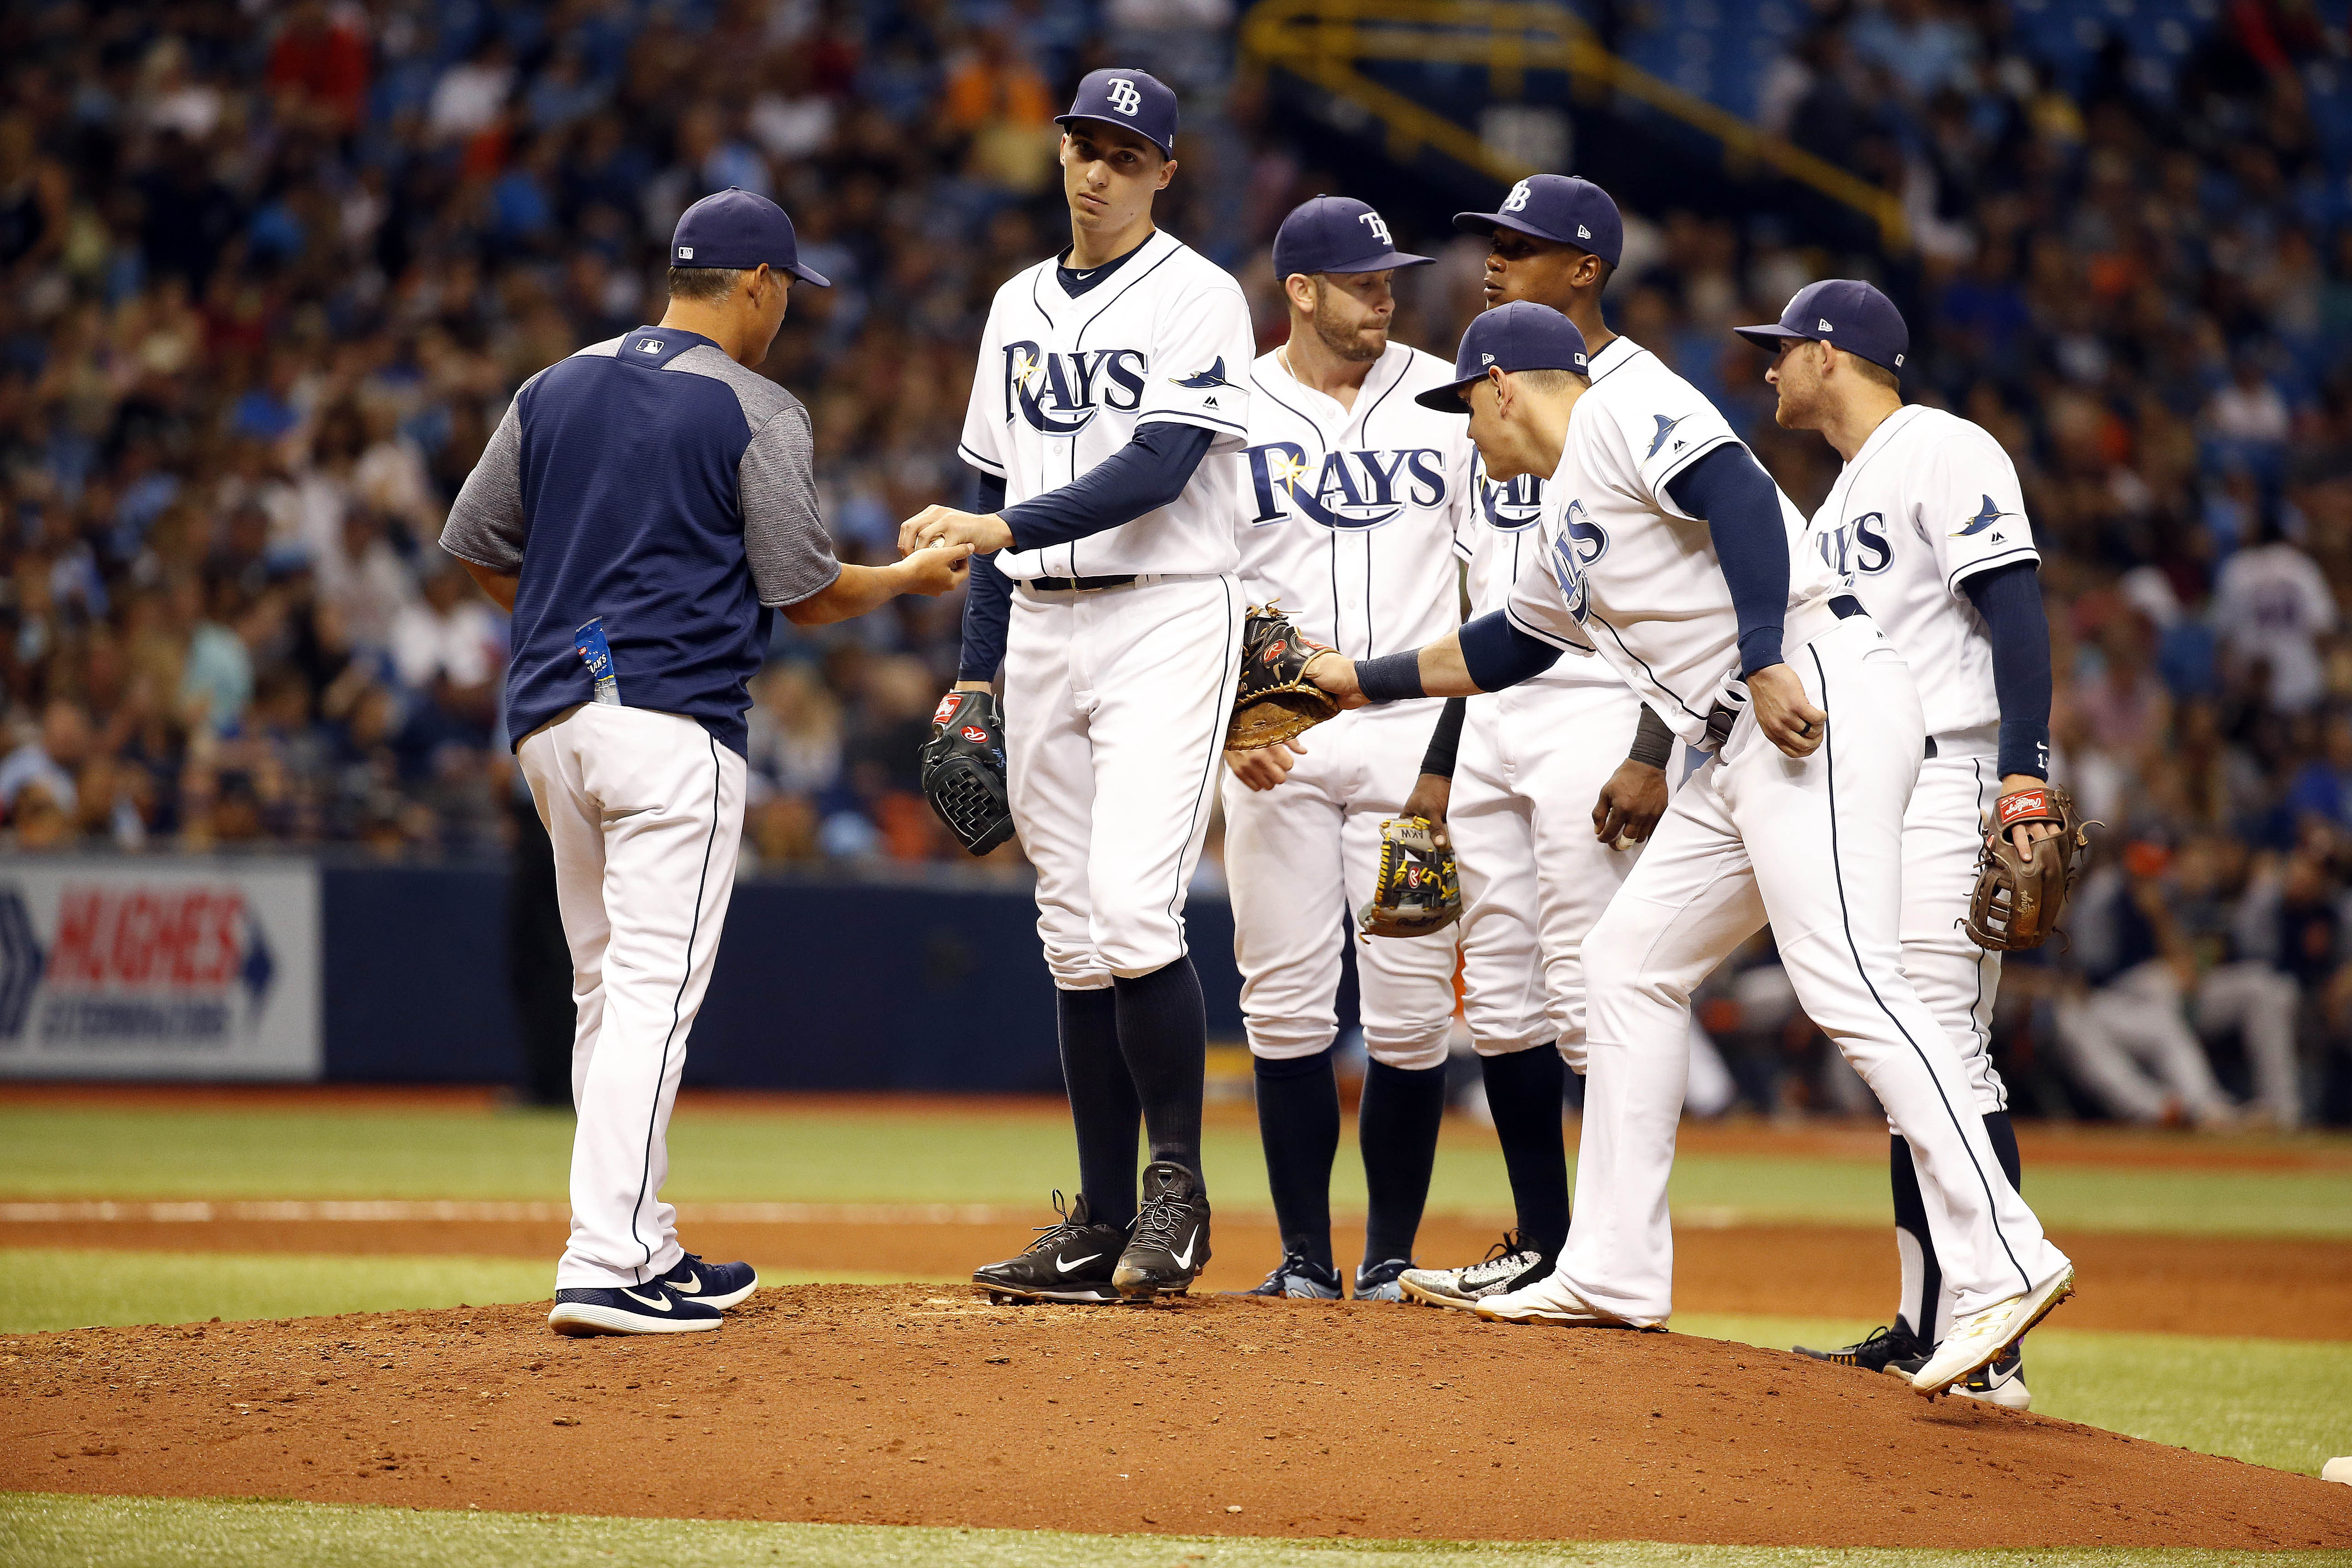 10026012-mlb-houston-astros-at-tampa-bay-rays